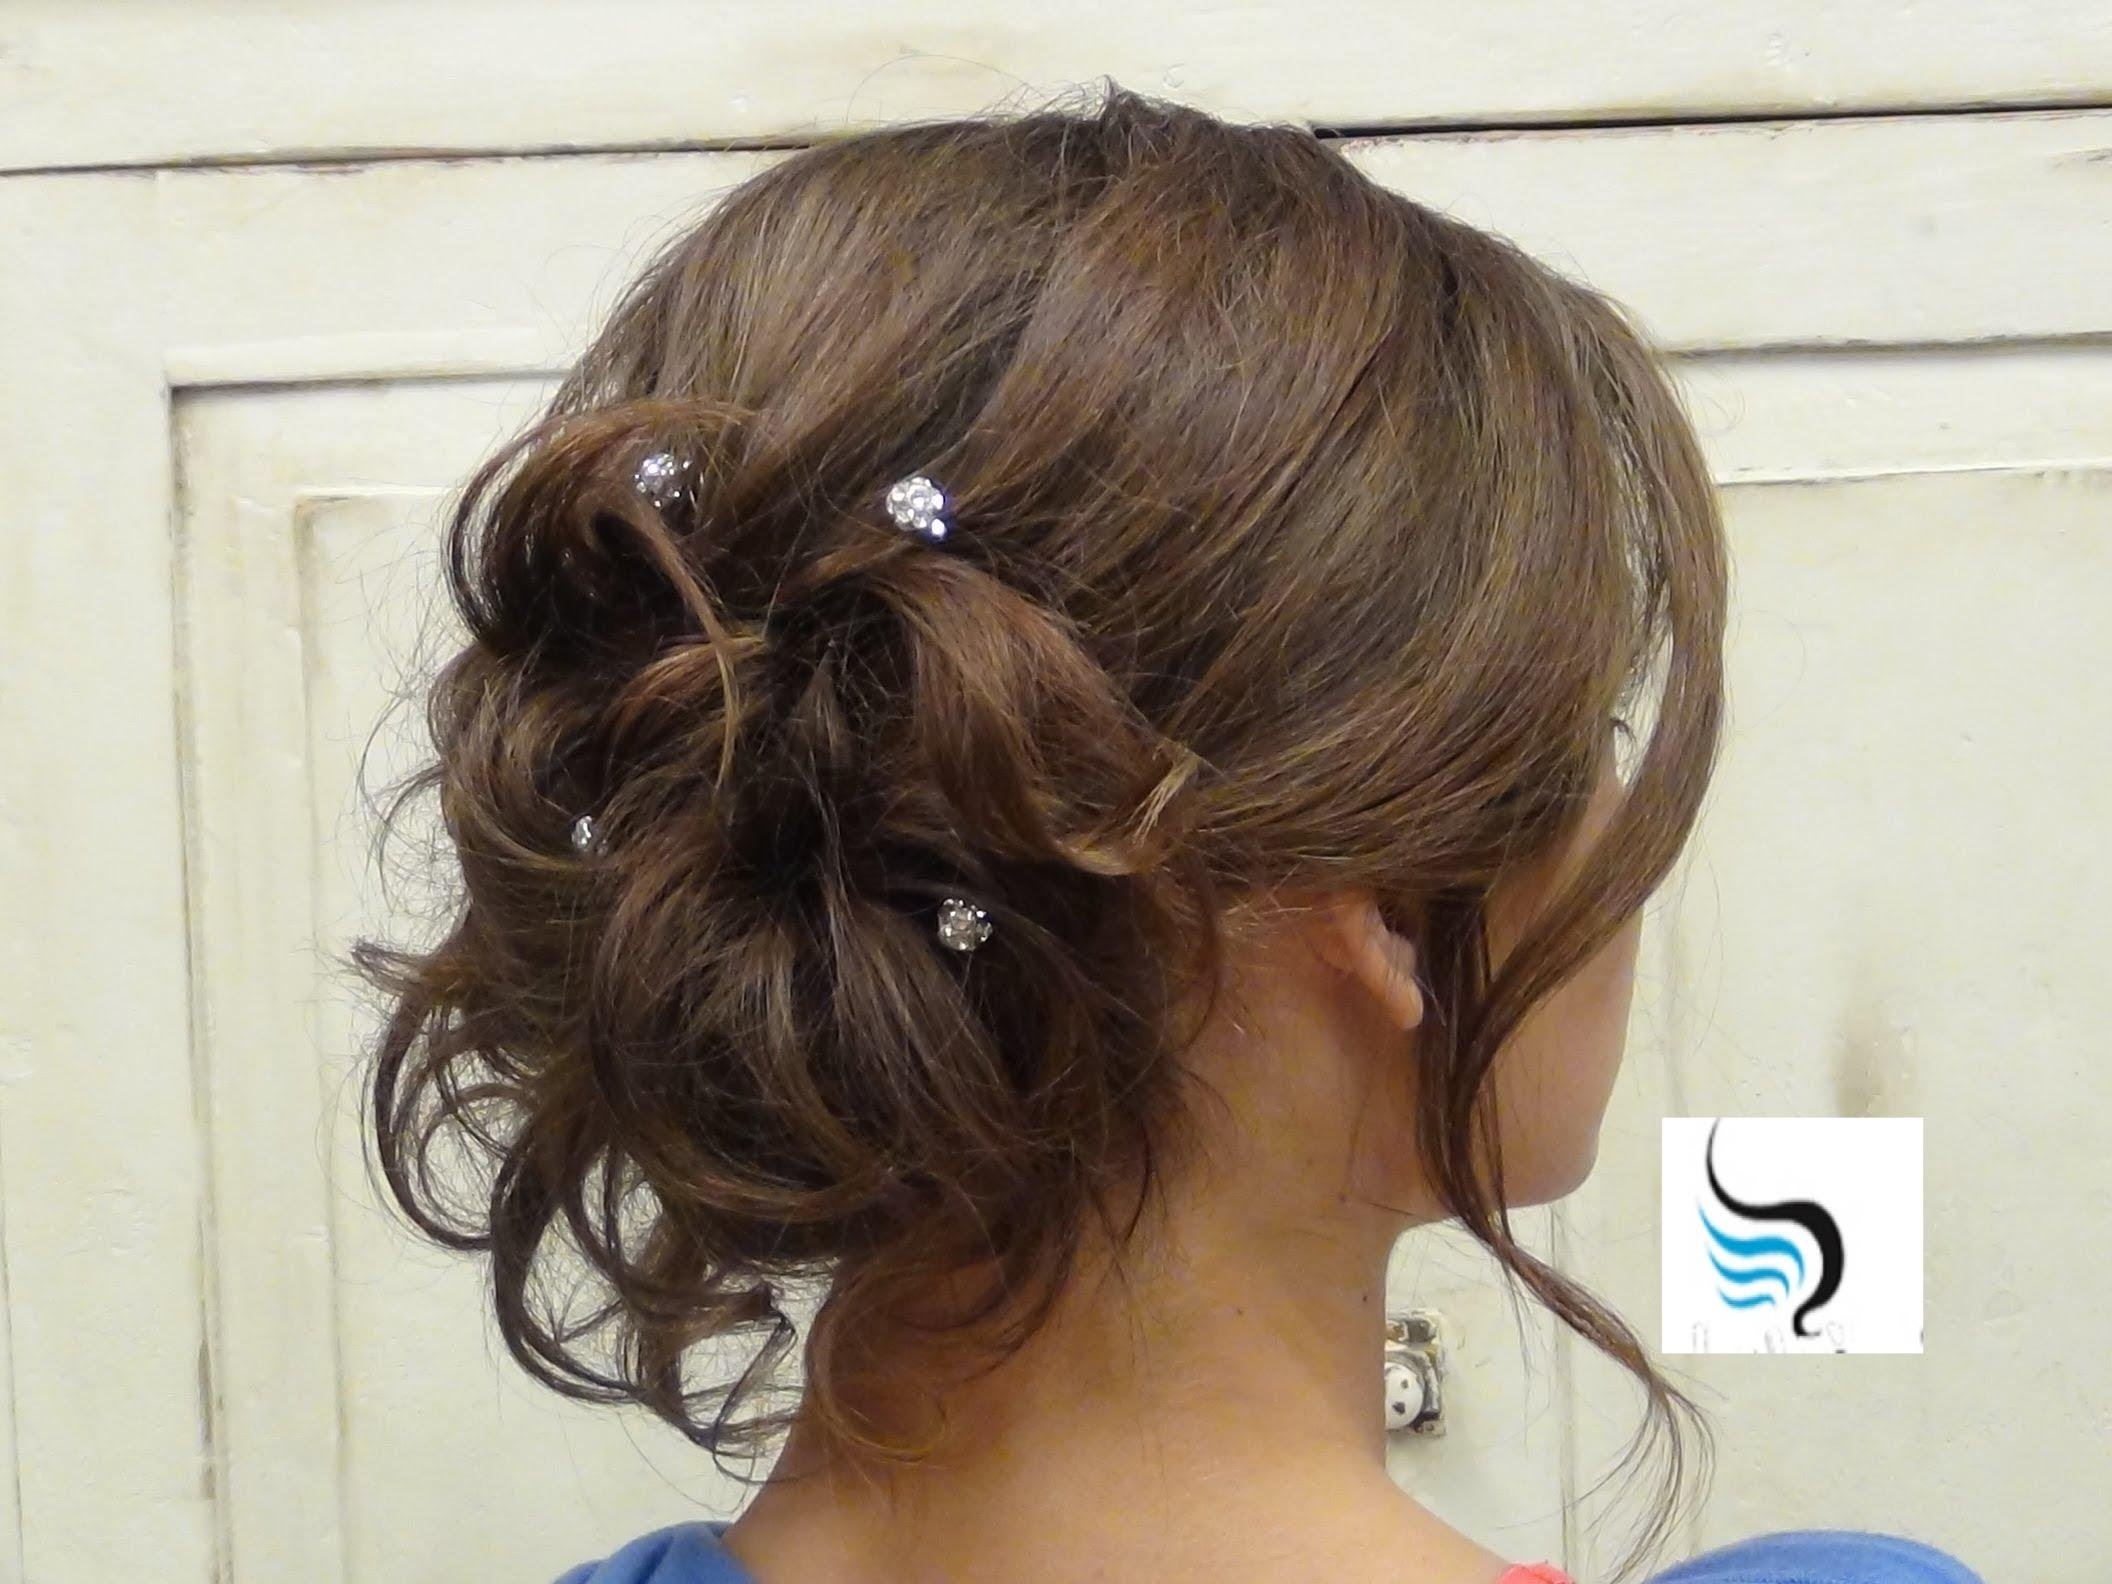 Preferred Curls Up Half Down Wedding Hairstyles Throughout Soft Curled Updo) For Long Hair Prom Or Wedding Hairstyles – Youtube (View 3 of 15)